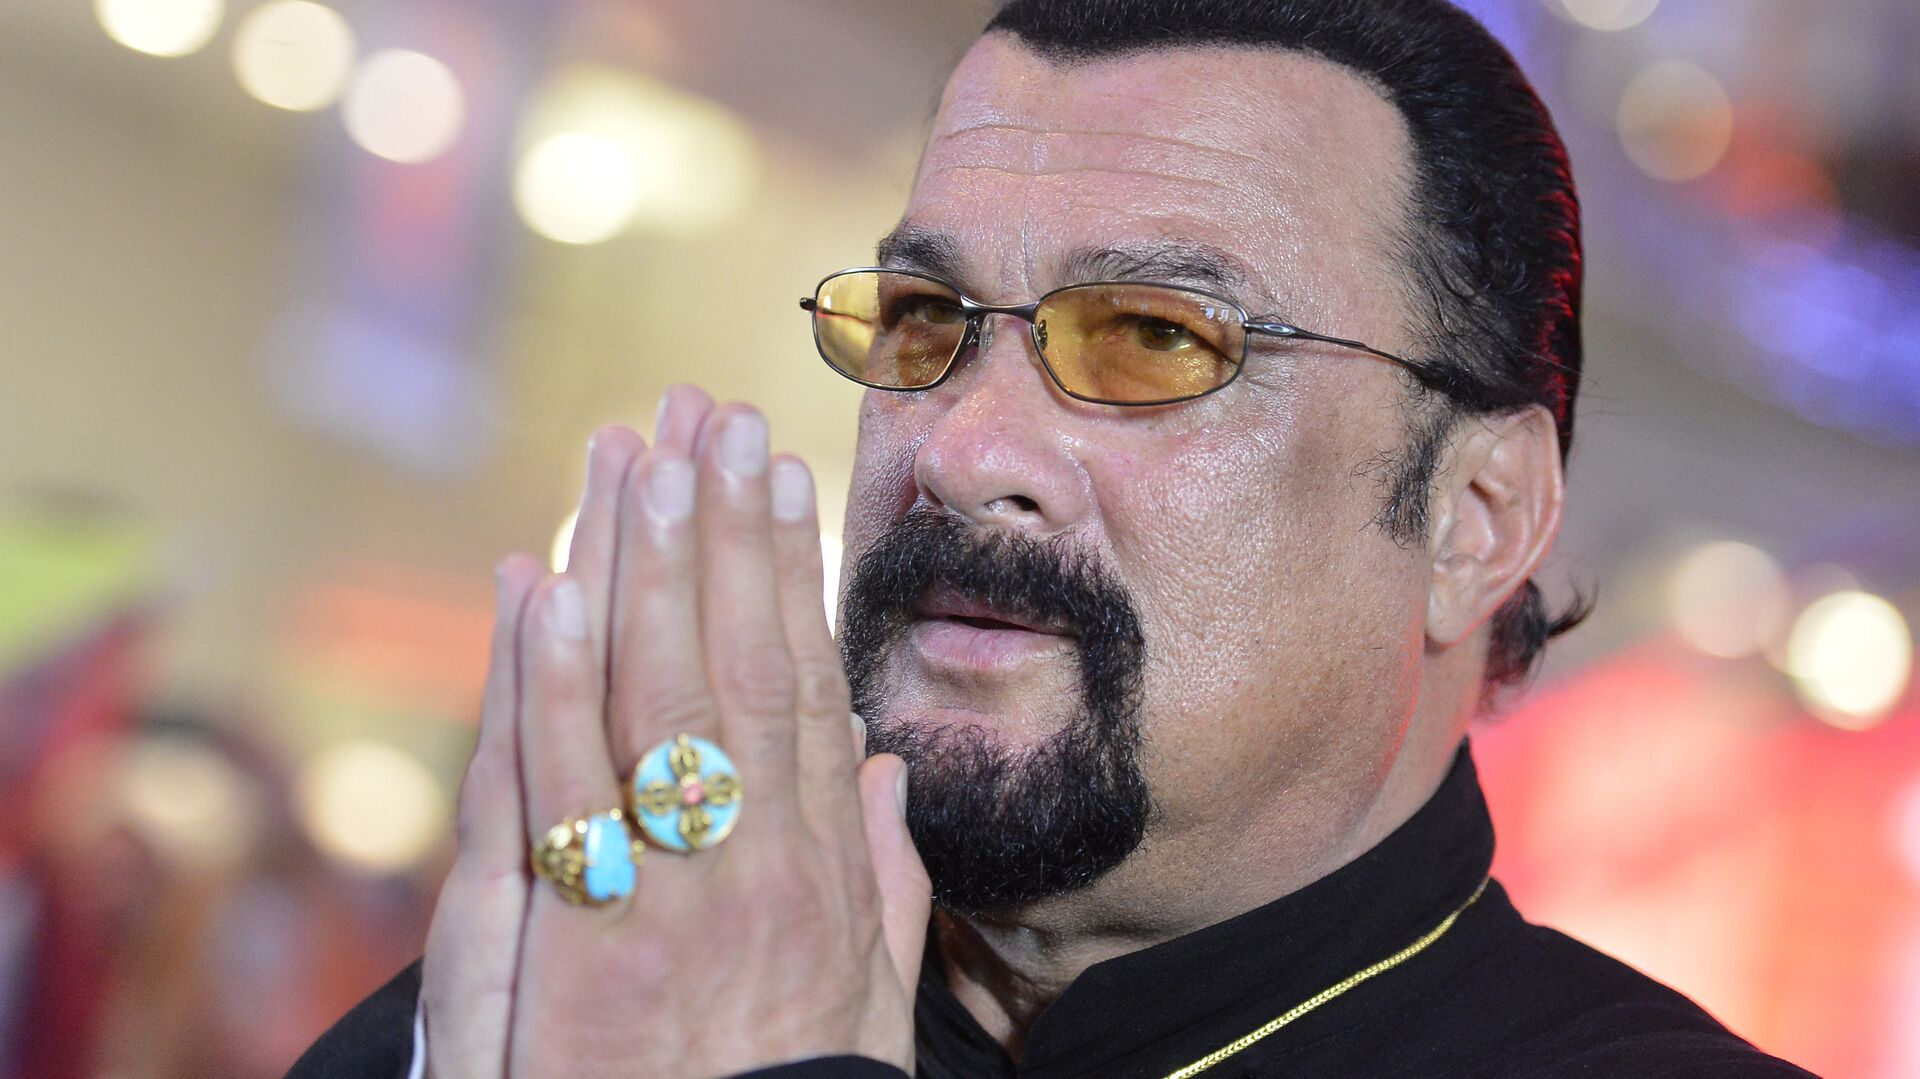 American actor, film producer and scriptwriter, martial artist and musician Steven Seagal at Moscow's Alley of Glory (File) - Sputnik Mundo, 1920, 05.05.2021